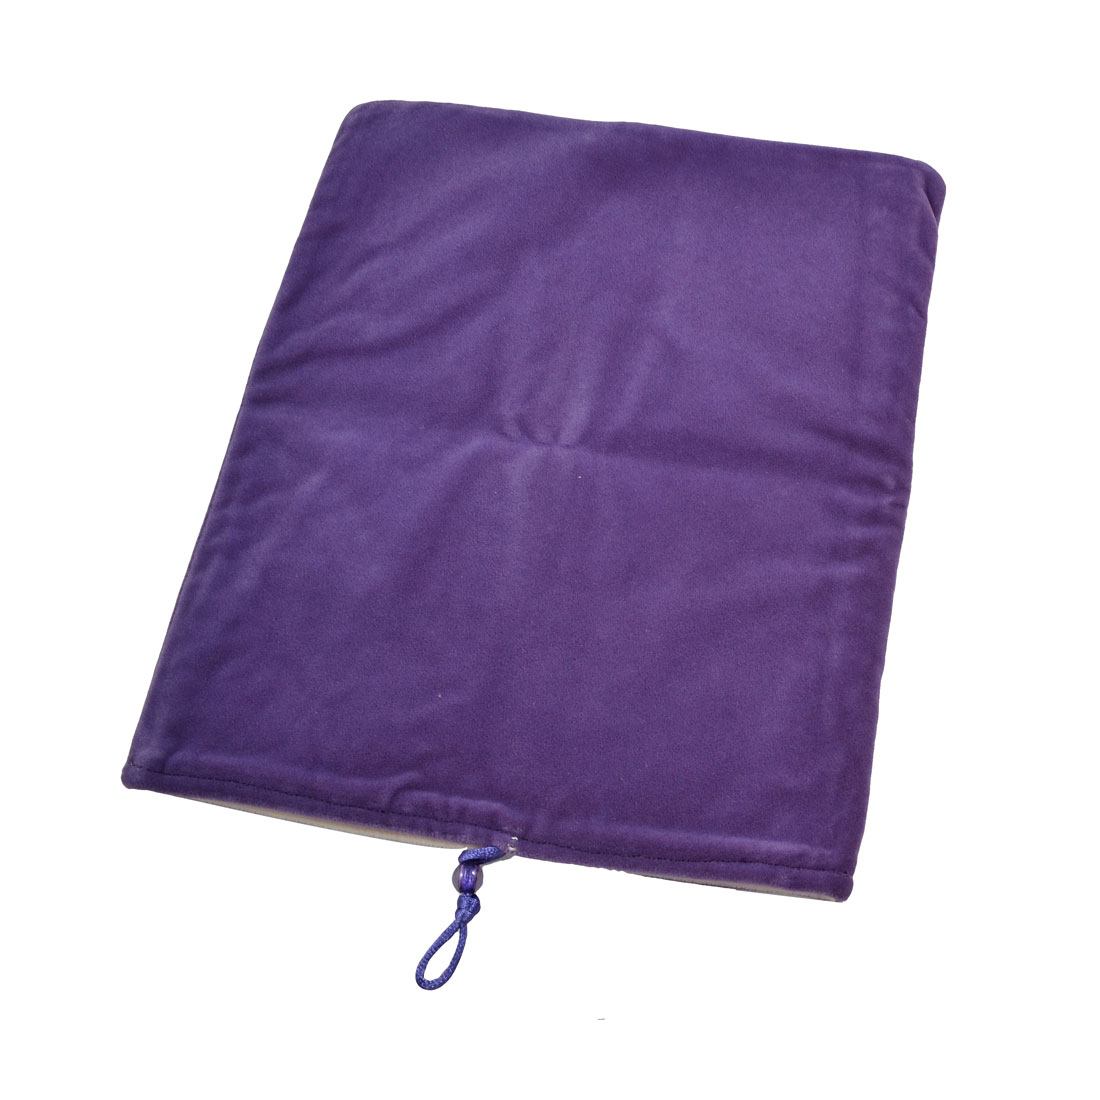 Purple Flannel Rectangle Shaped Pouch Case